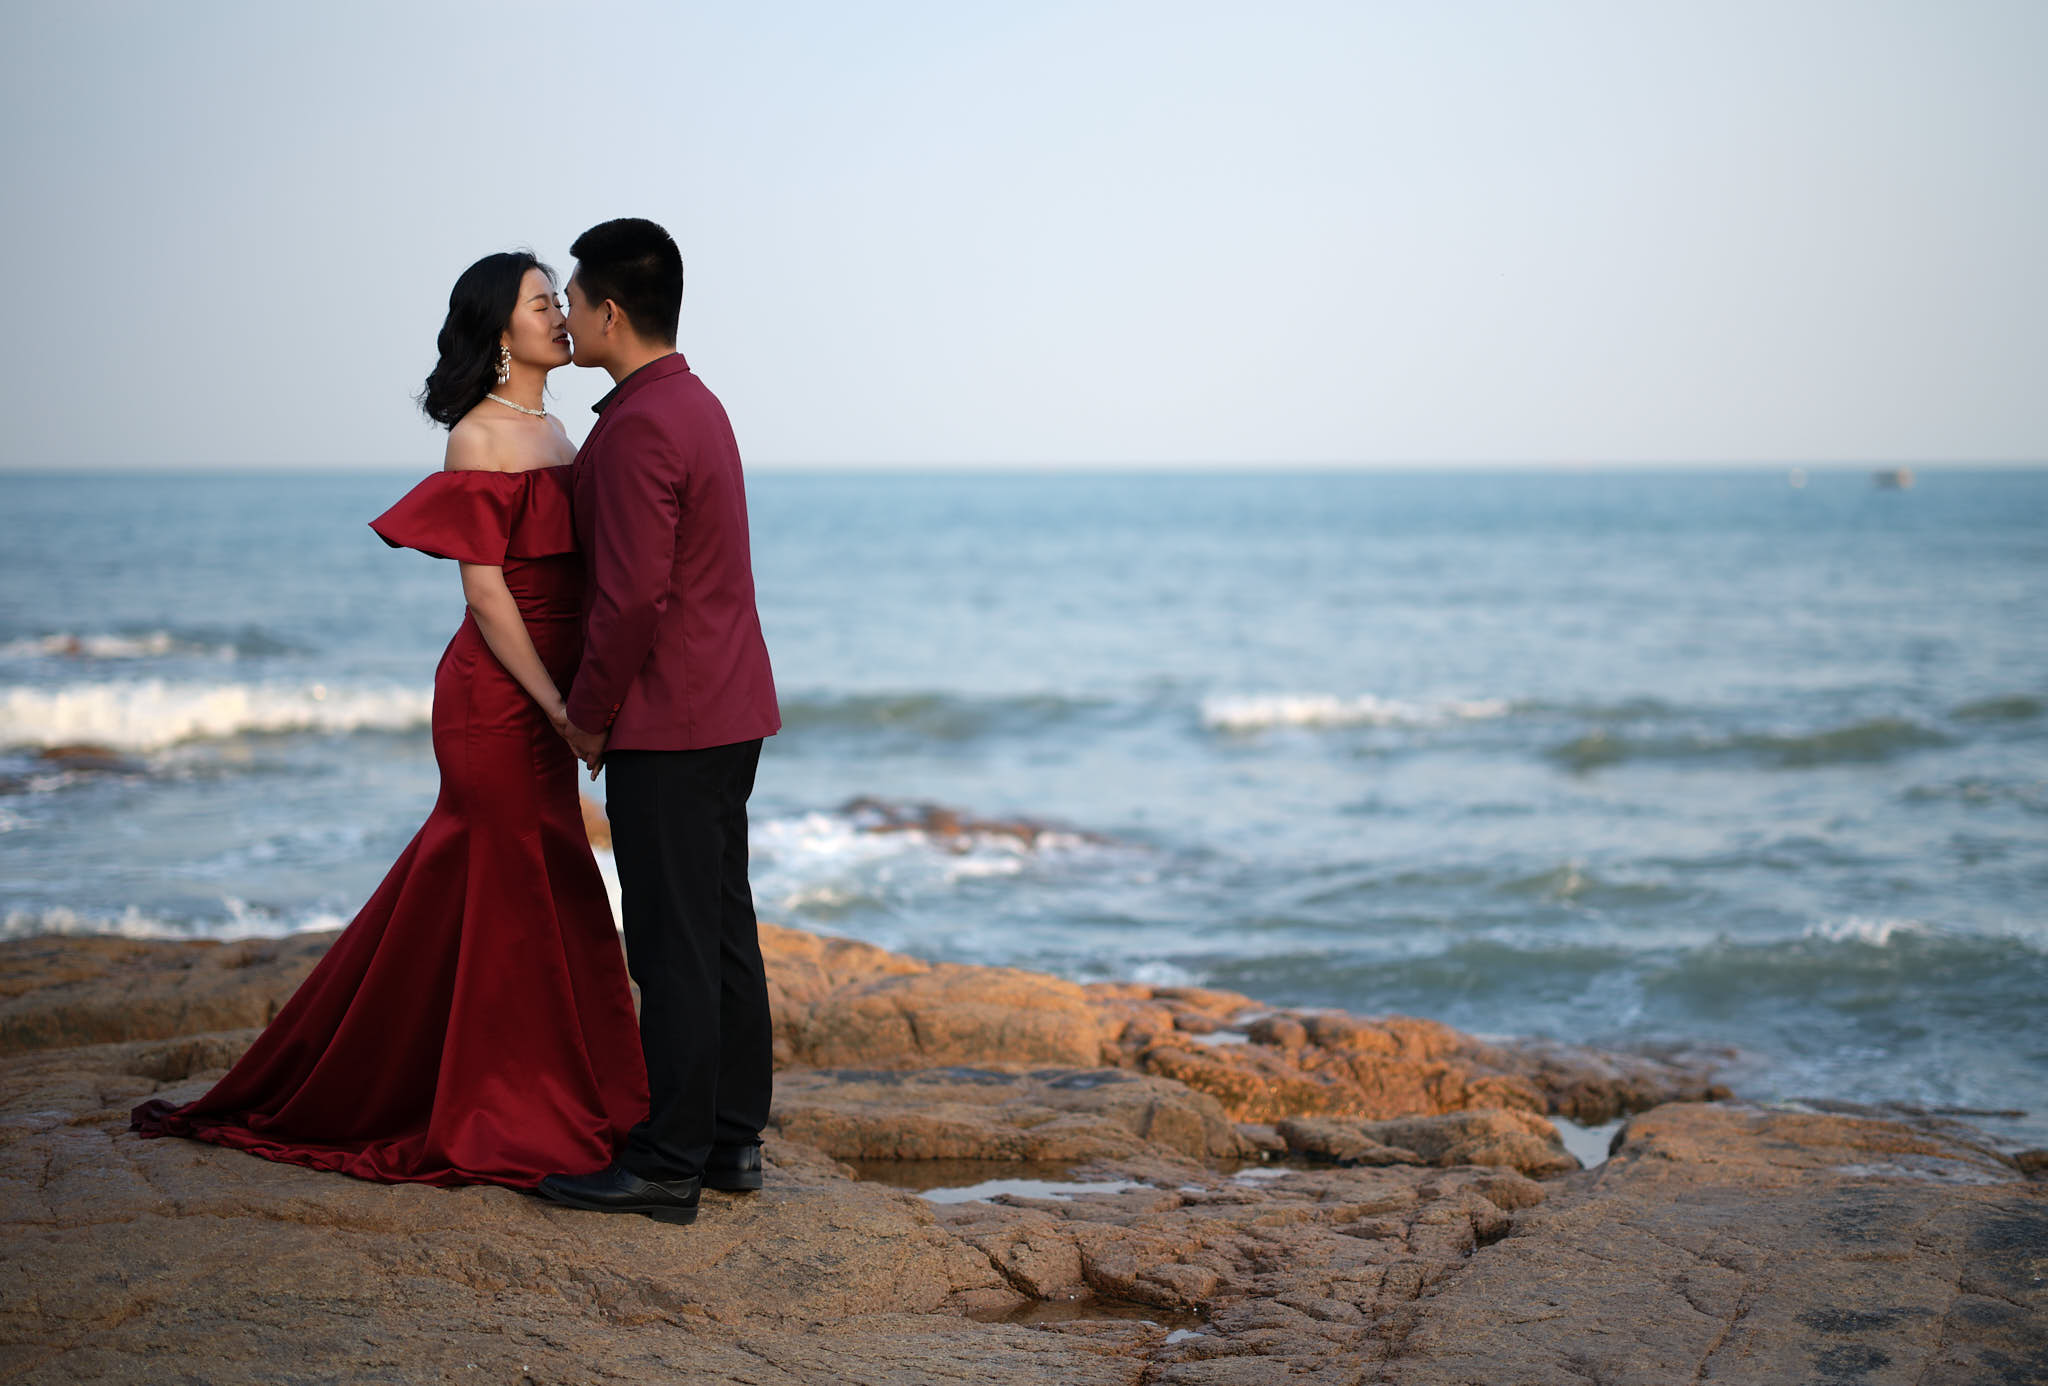 Caught a couple kissing at the beach in Qingdao